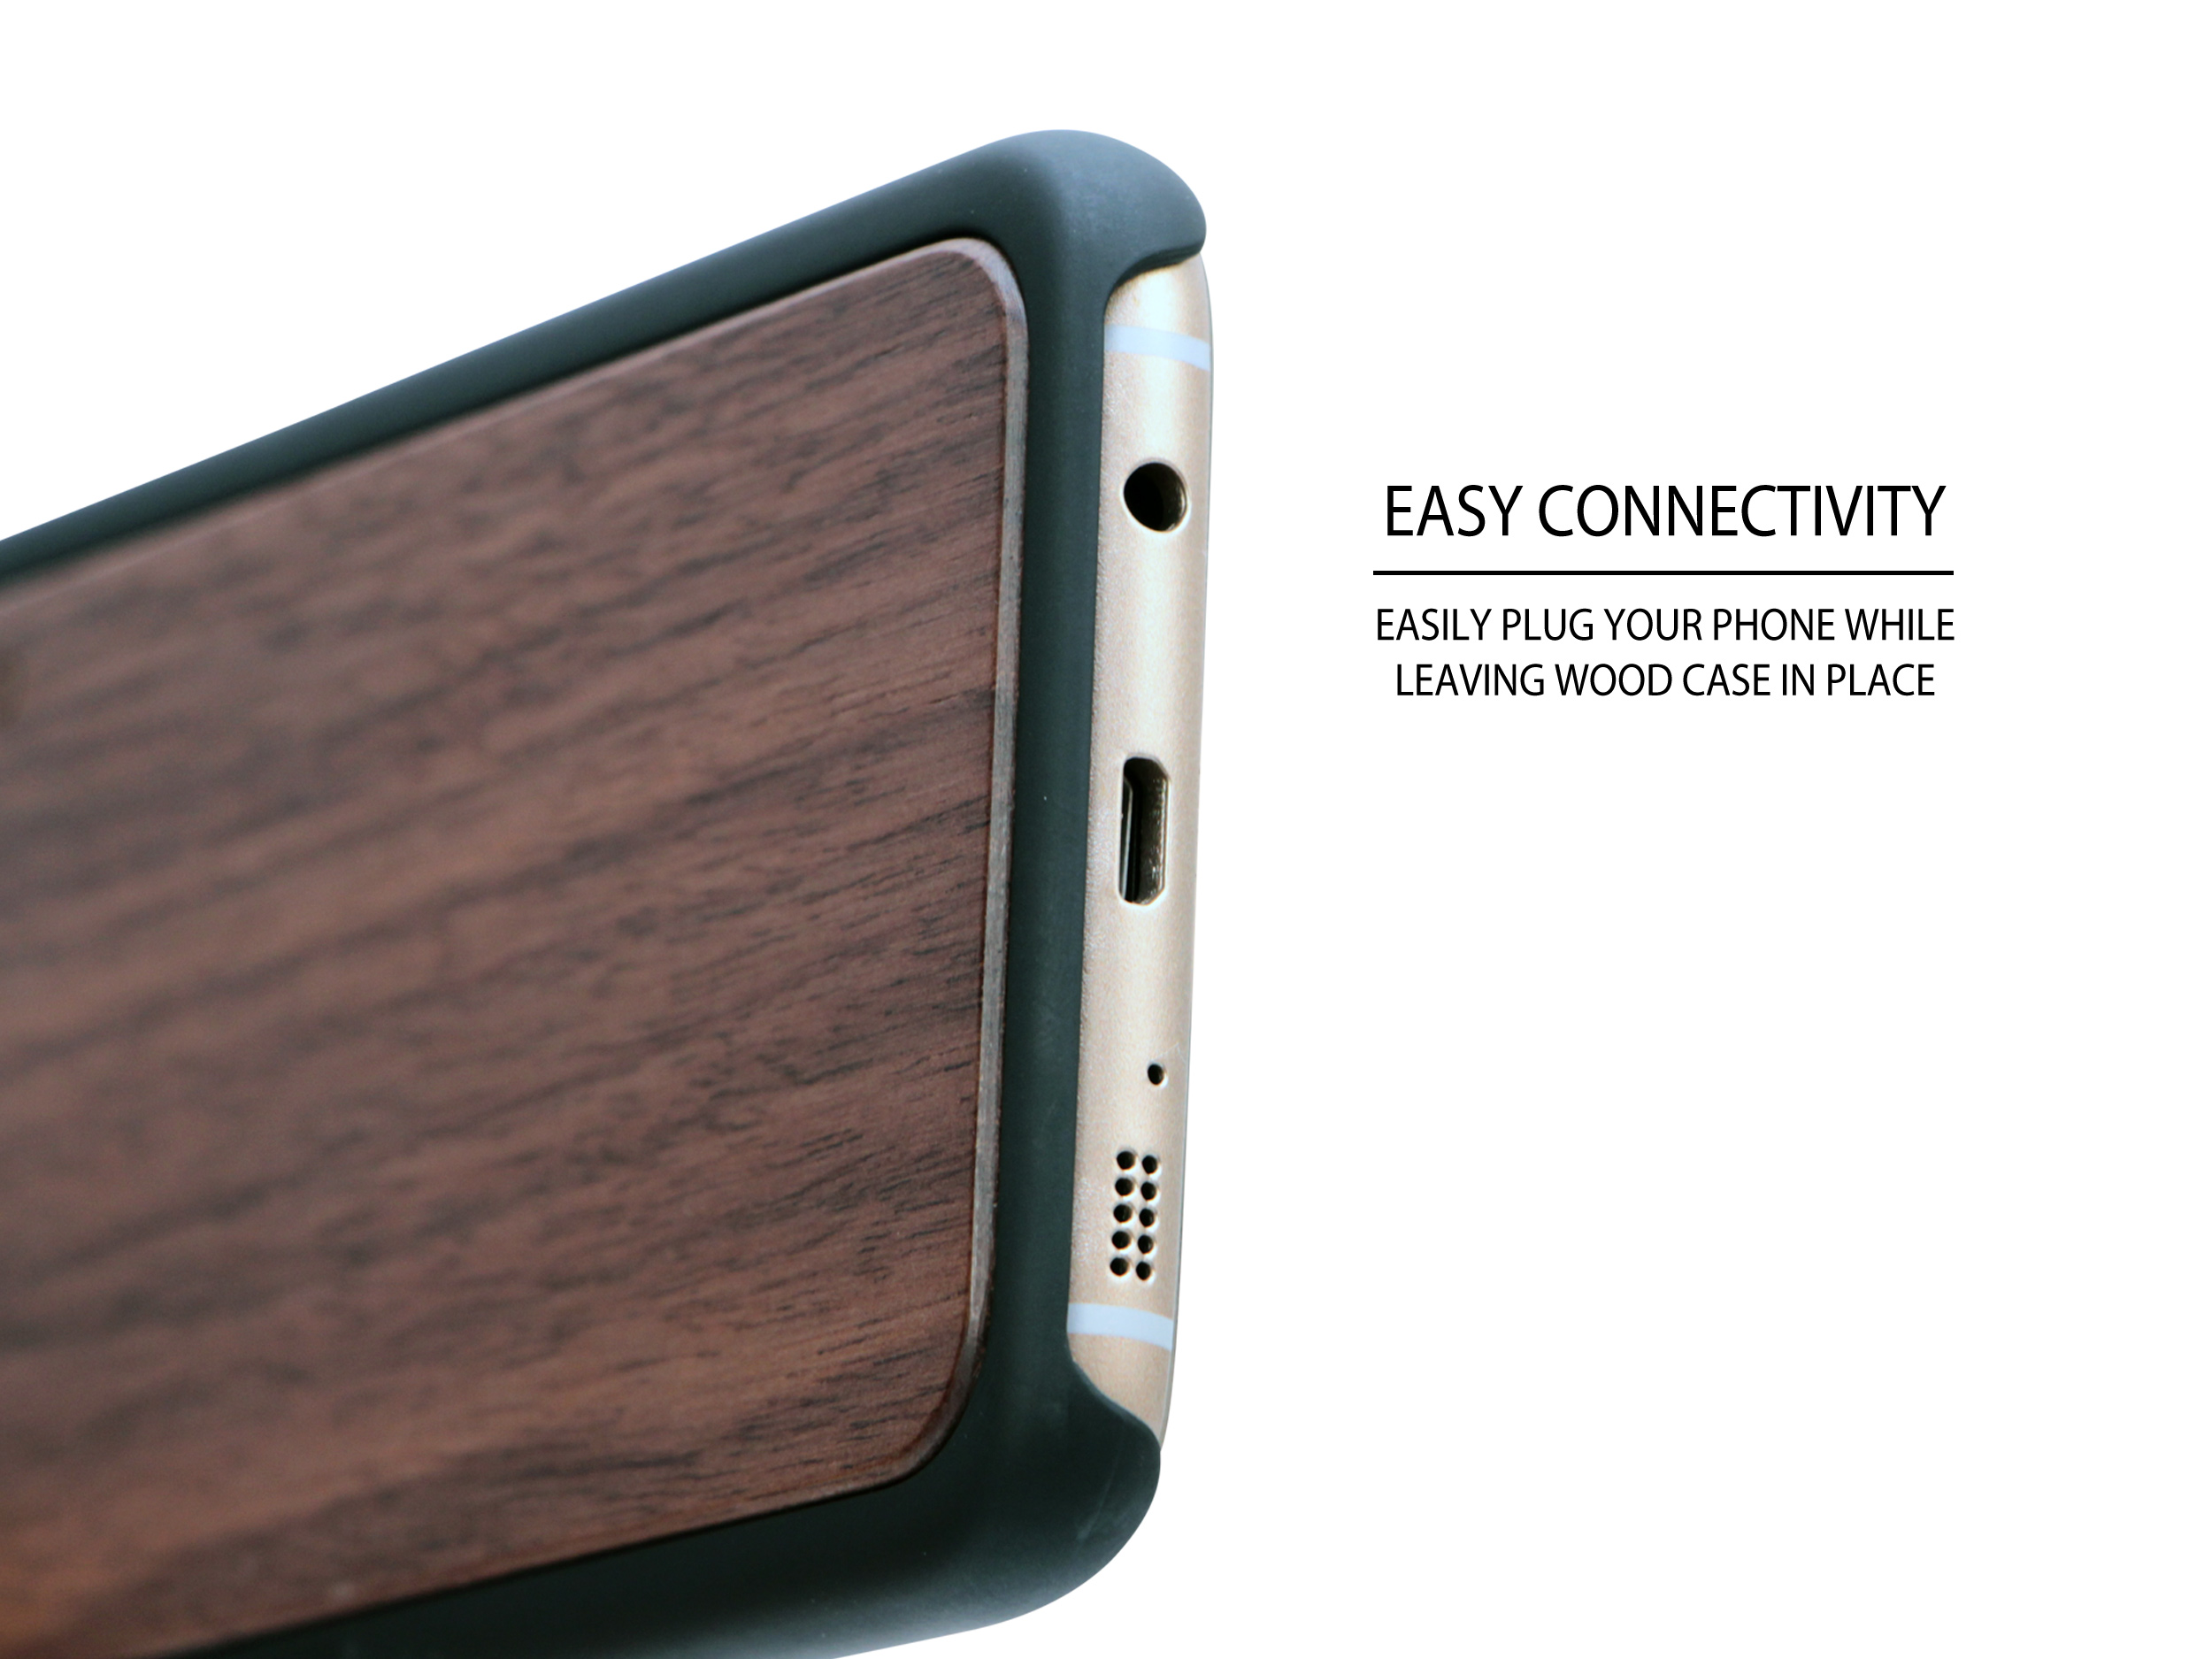 Samsung Galaxy S7 Edge wood case walnut socket